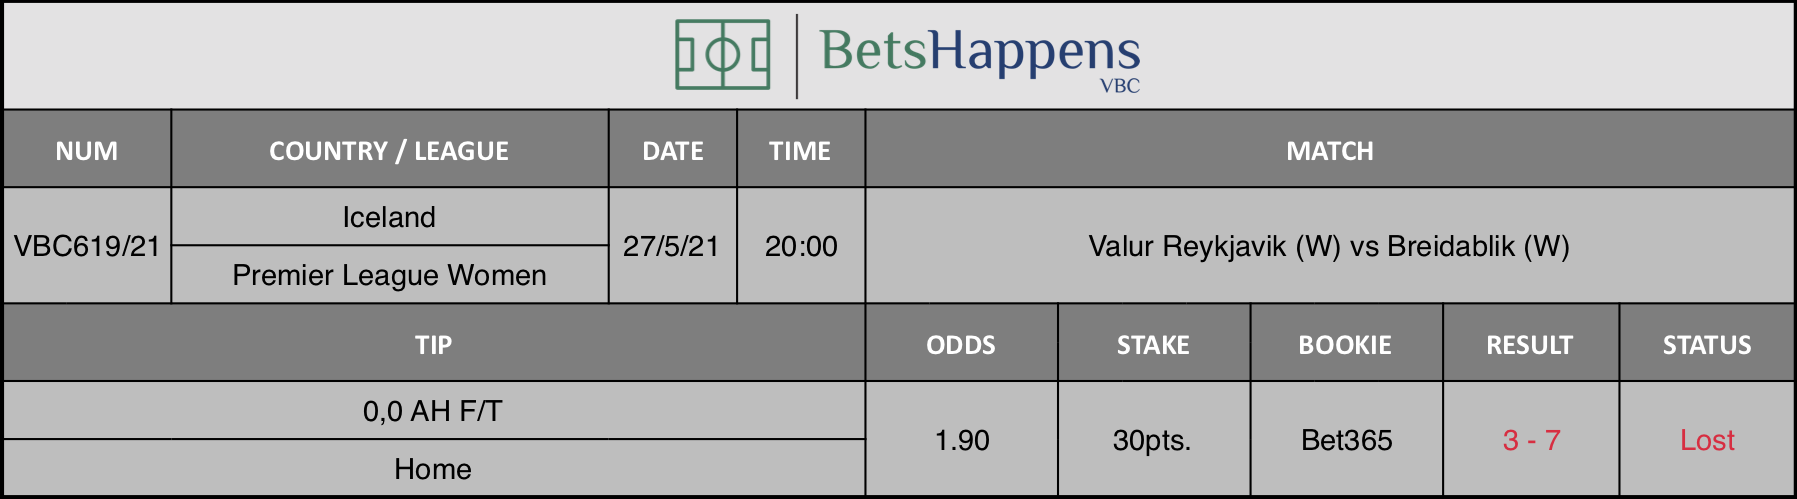 Results of our tip for the Valur Reykjavik (W) vs Breidablik (W) match where 0,0 AH F/T  Home is recommended.